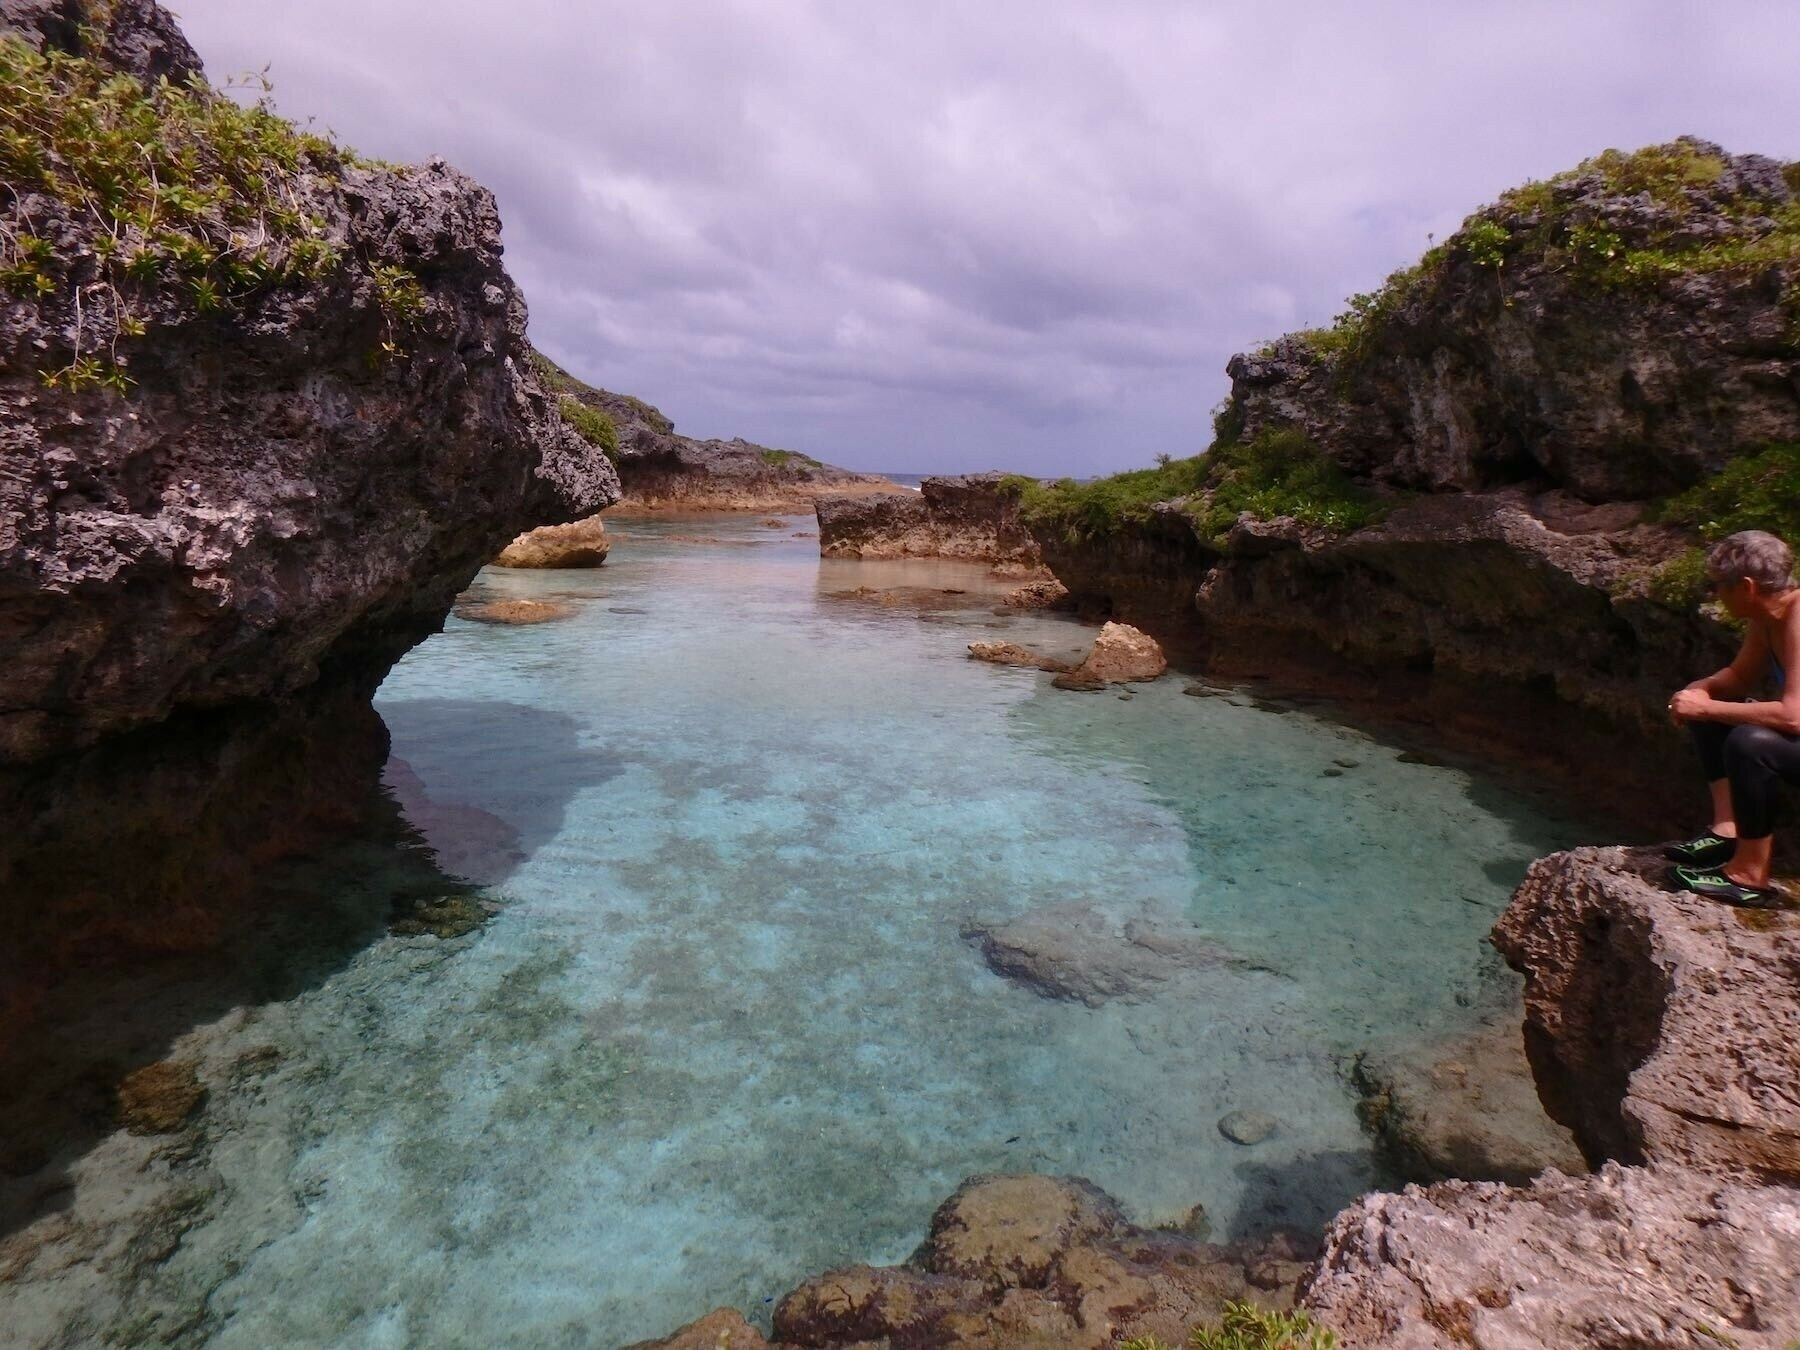 Green blue water, brown rocks and a violet sky.